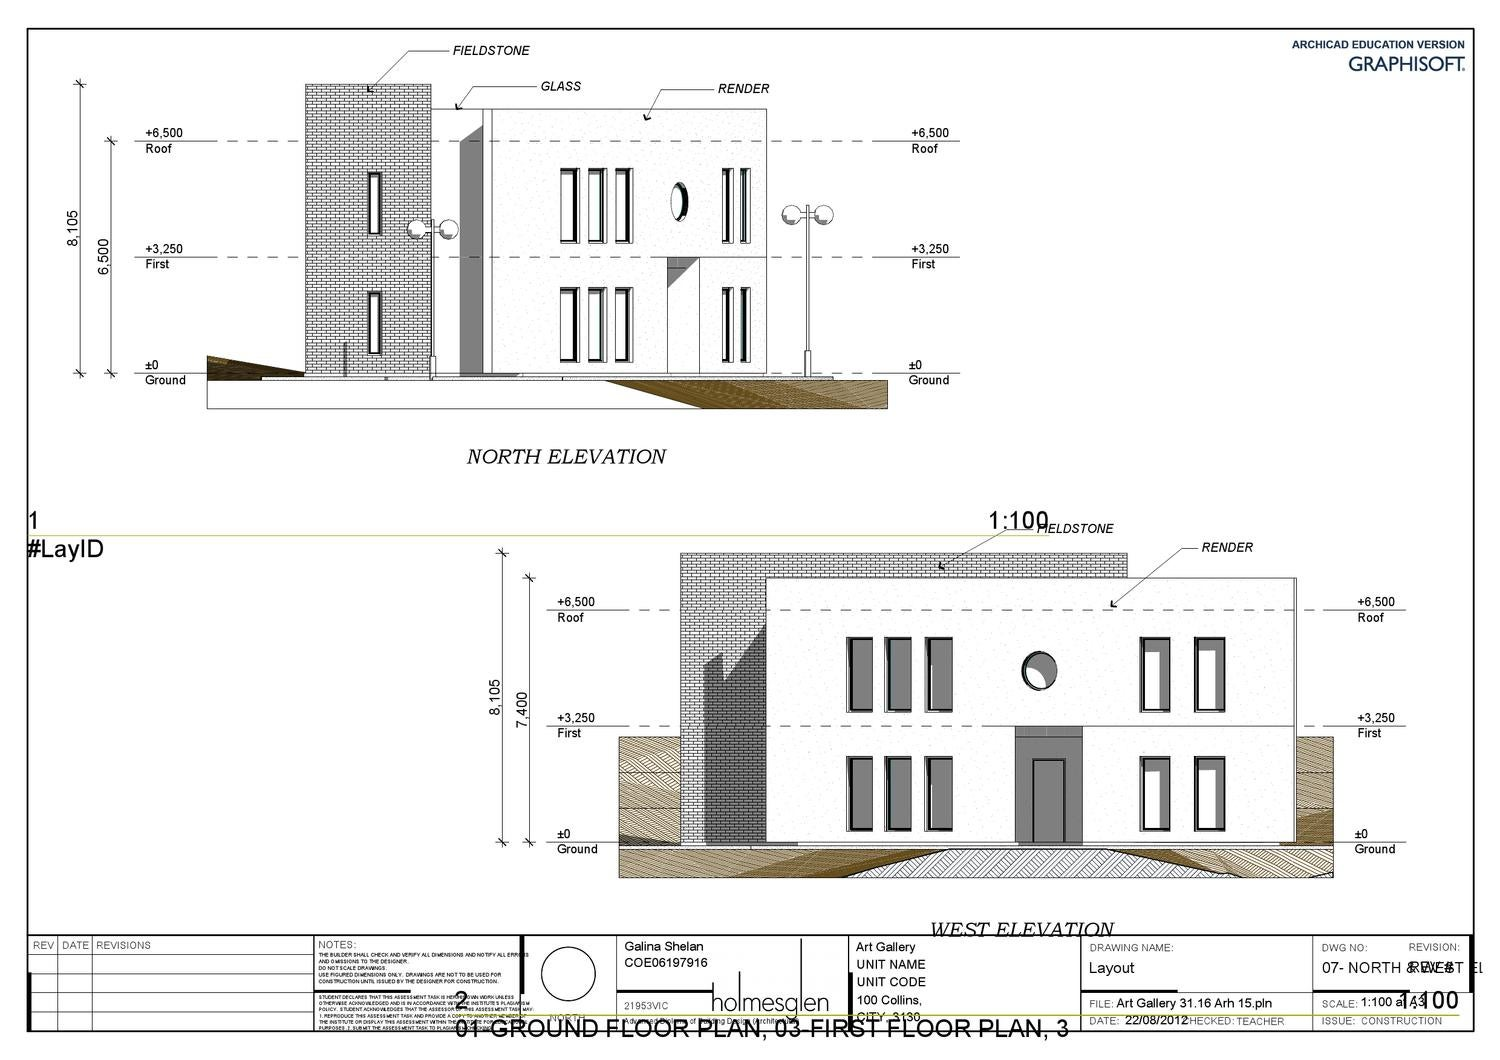 Archicad Art Gallery NORTH & WEST ELEVATIONS by Galina